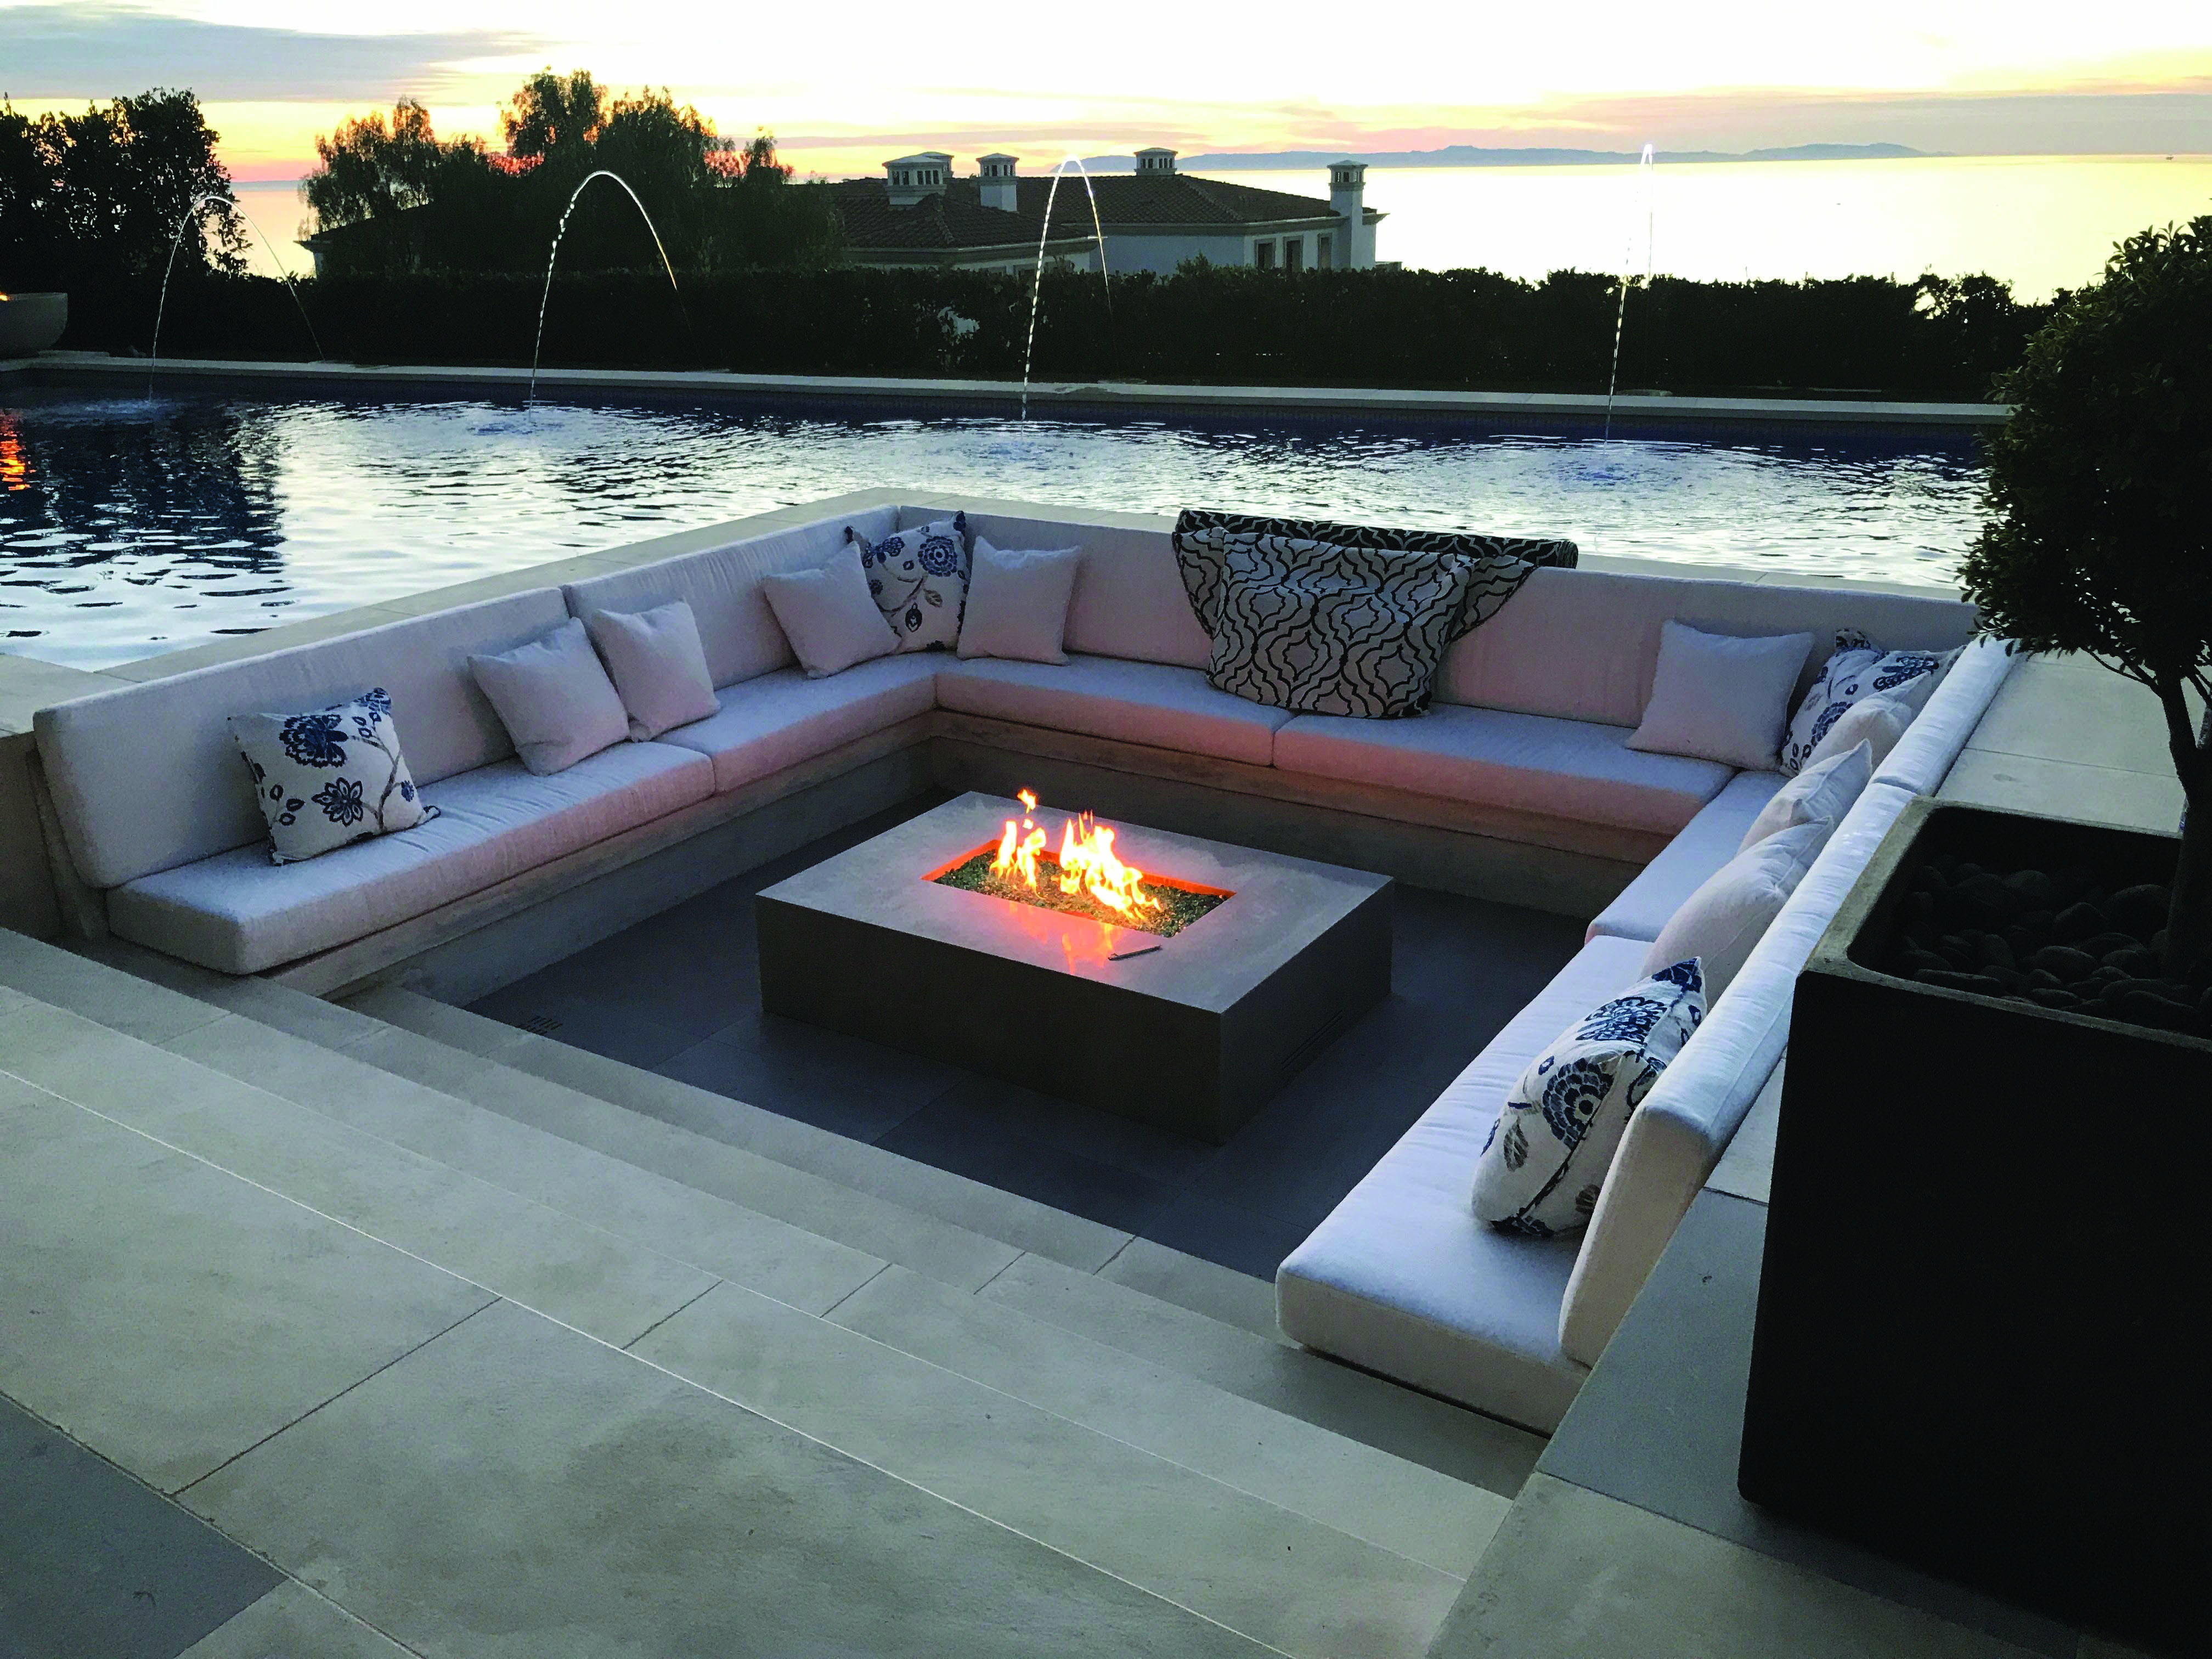 Fire Place Design Concepts For An Elegant Exterior Space Fire